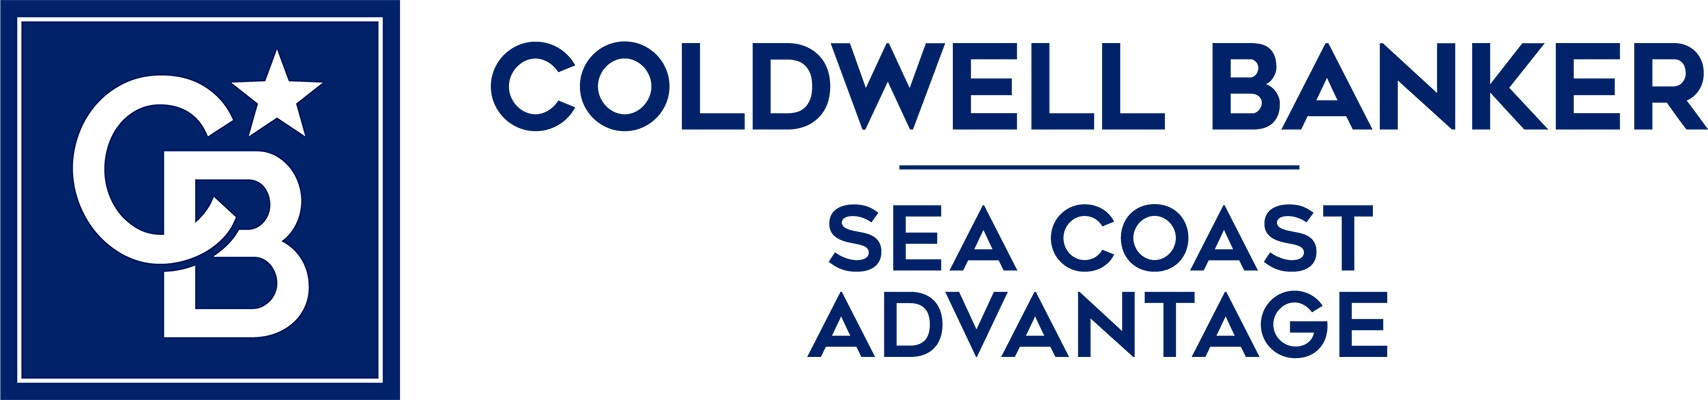 Blaise Allen - Coldwell Banker Sea Coast Advantage Realty Logo